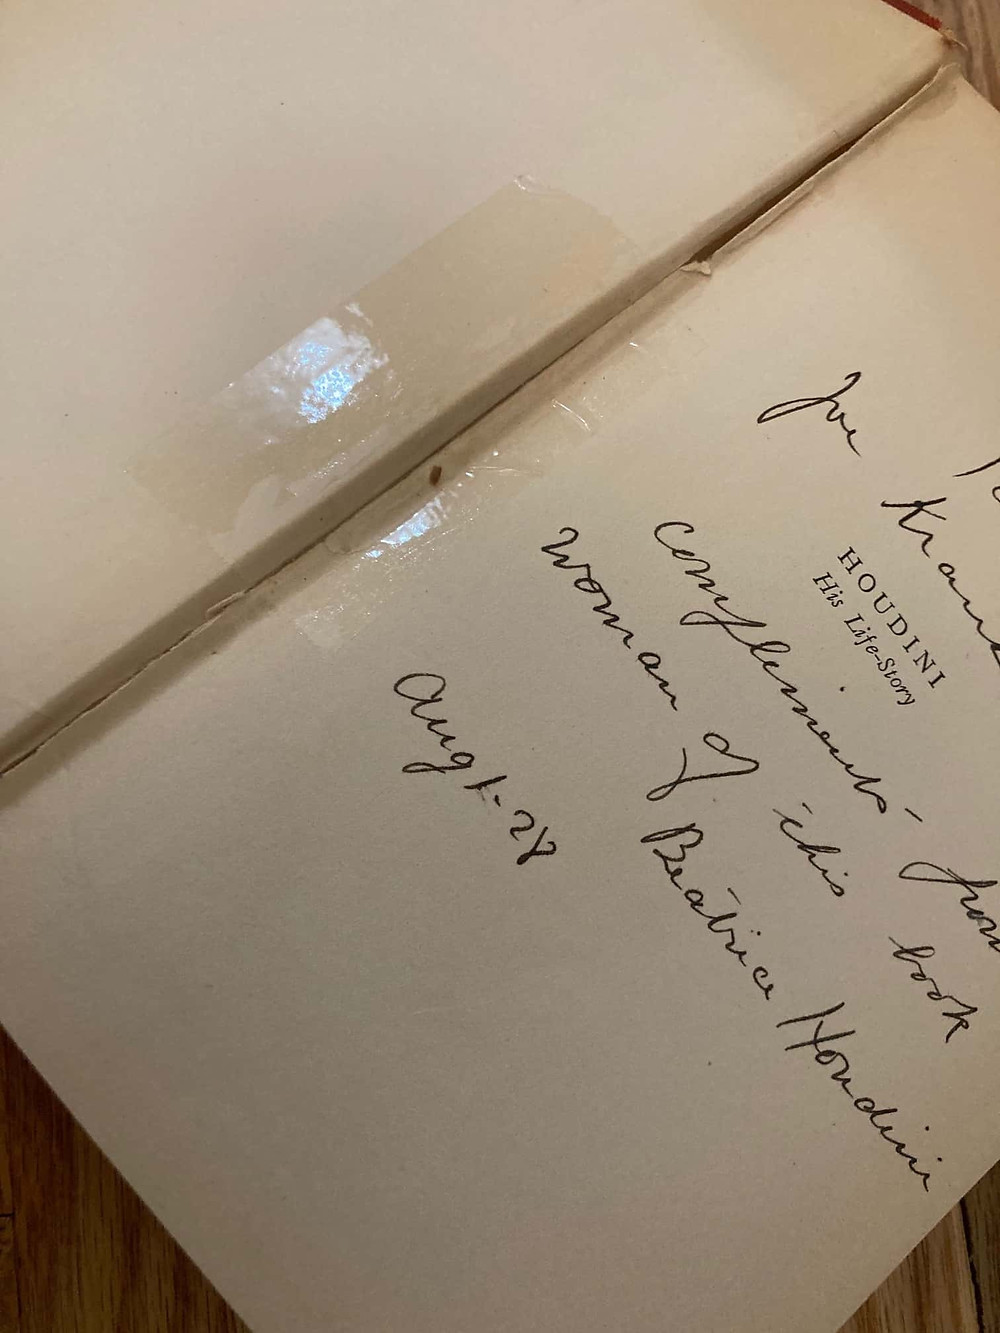 Book: Houdini: His life-story signed by Bess Houdini